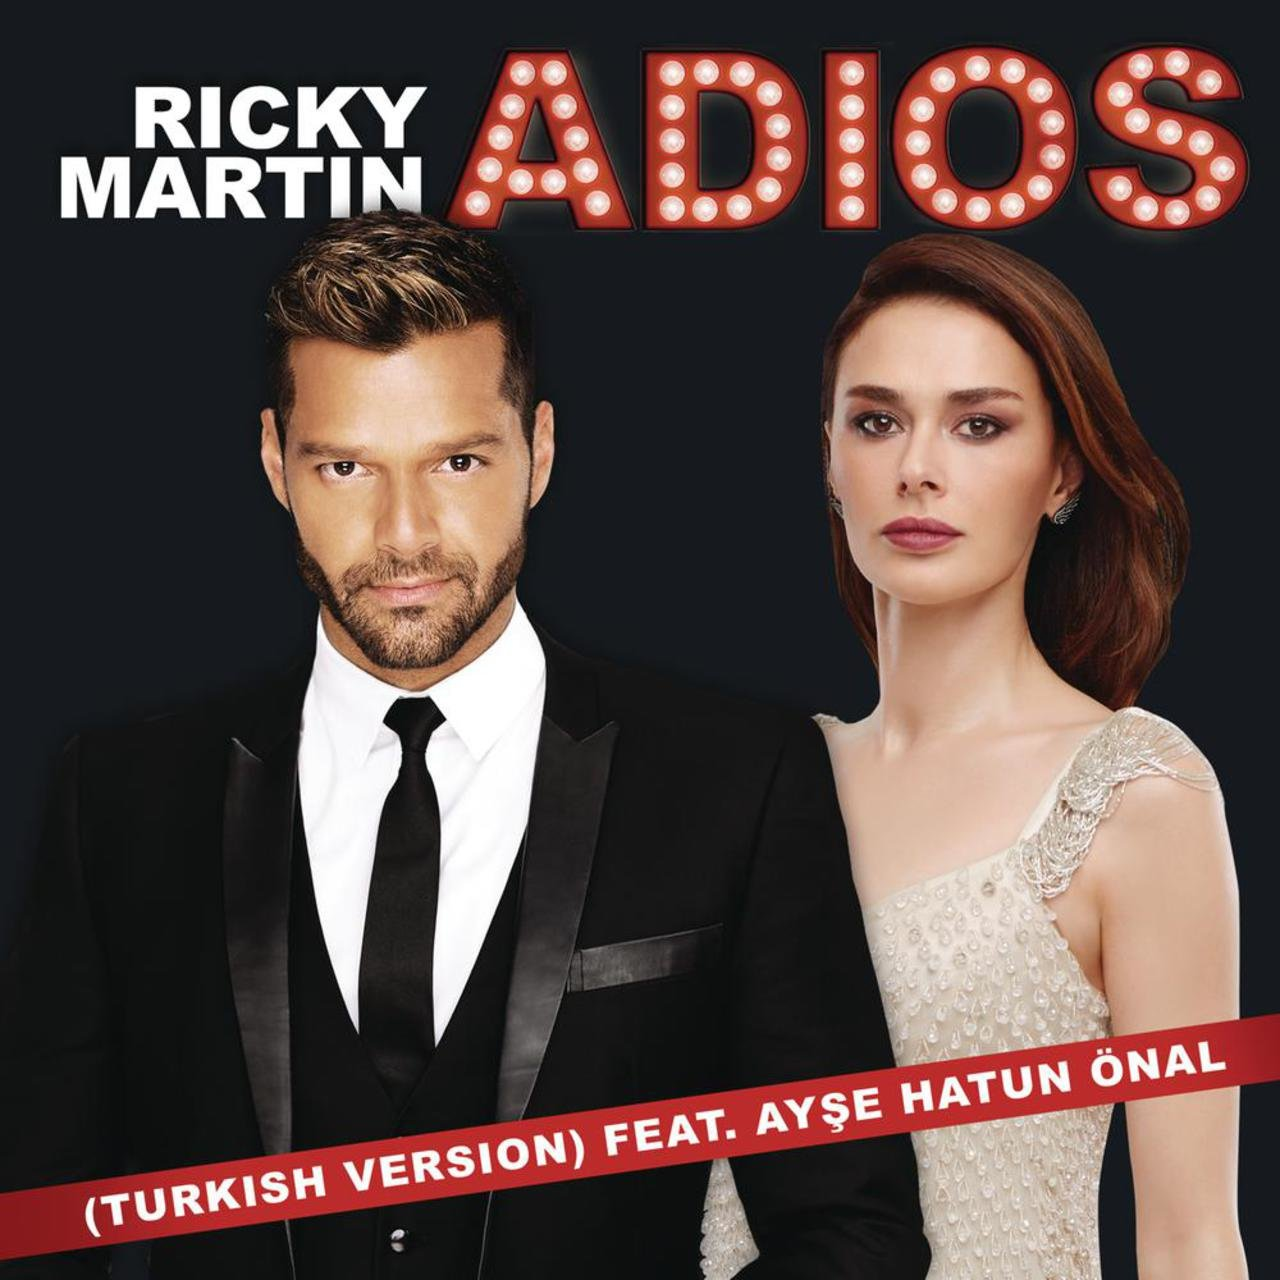 Adiós (Turkish Version)